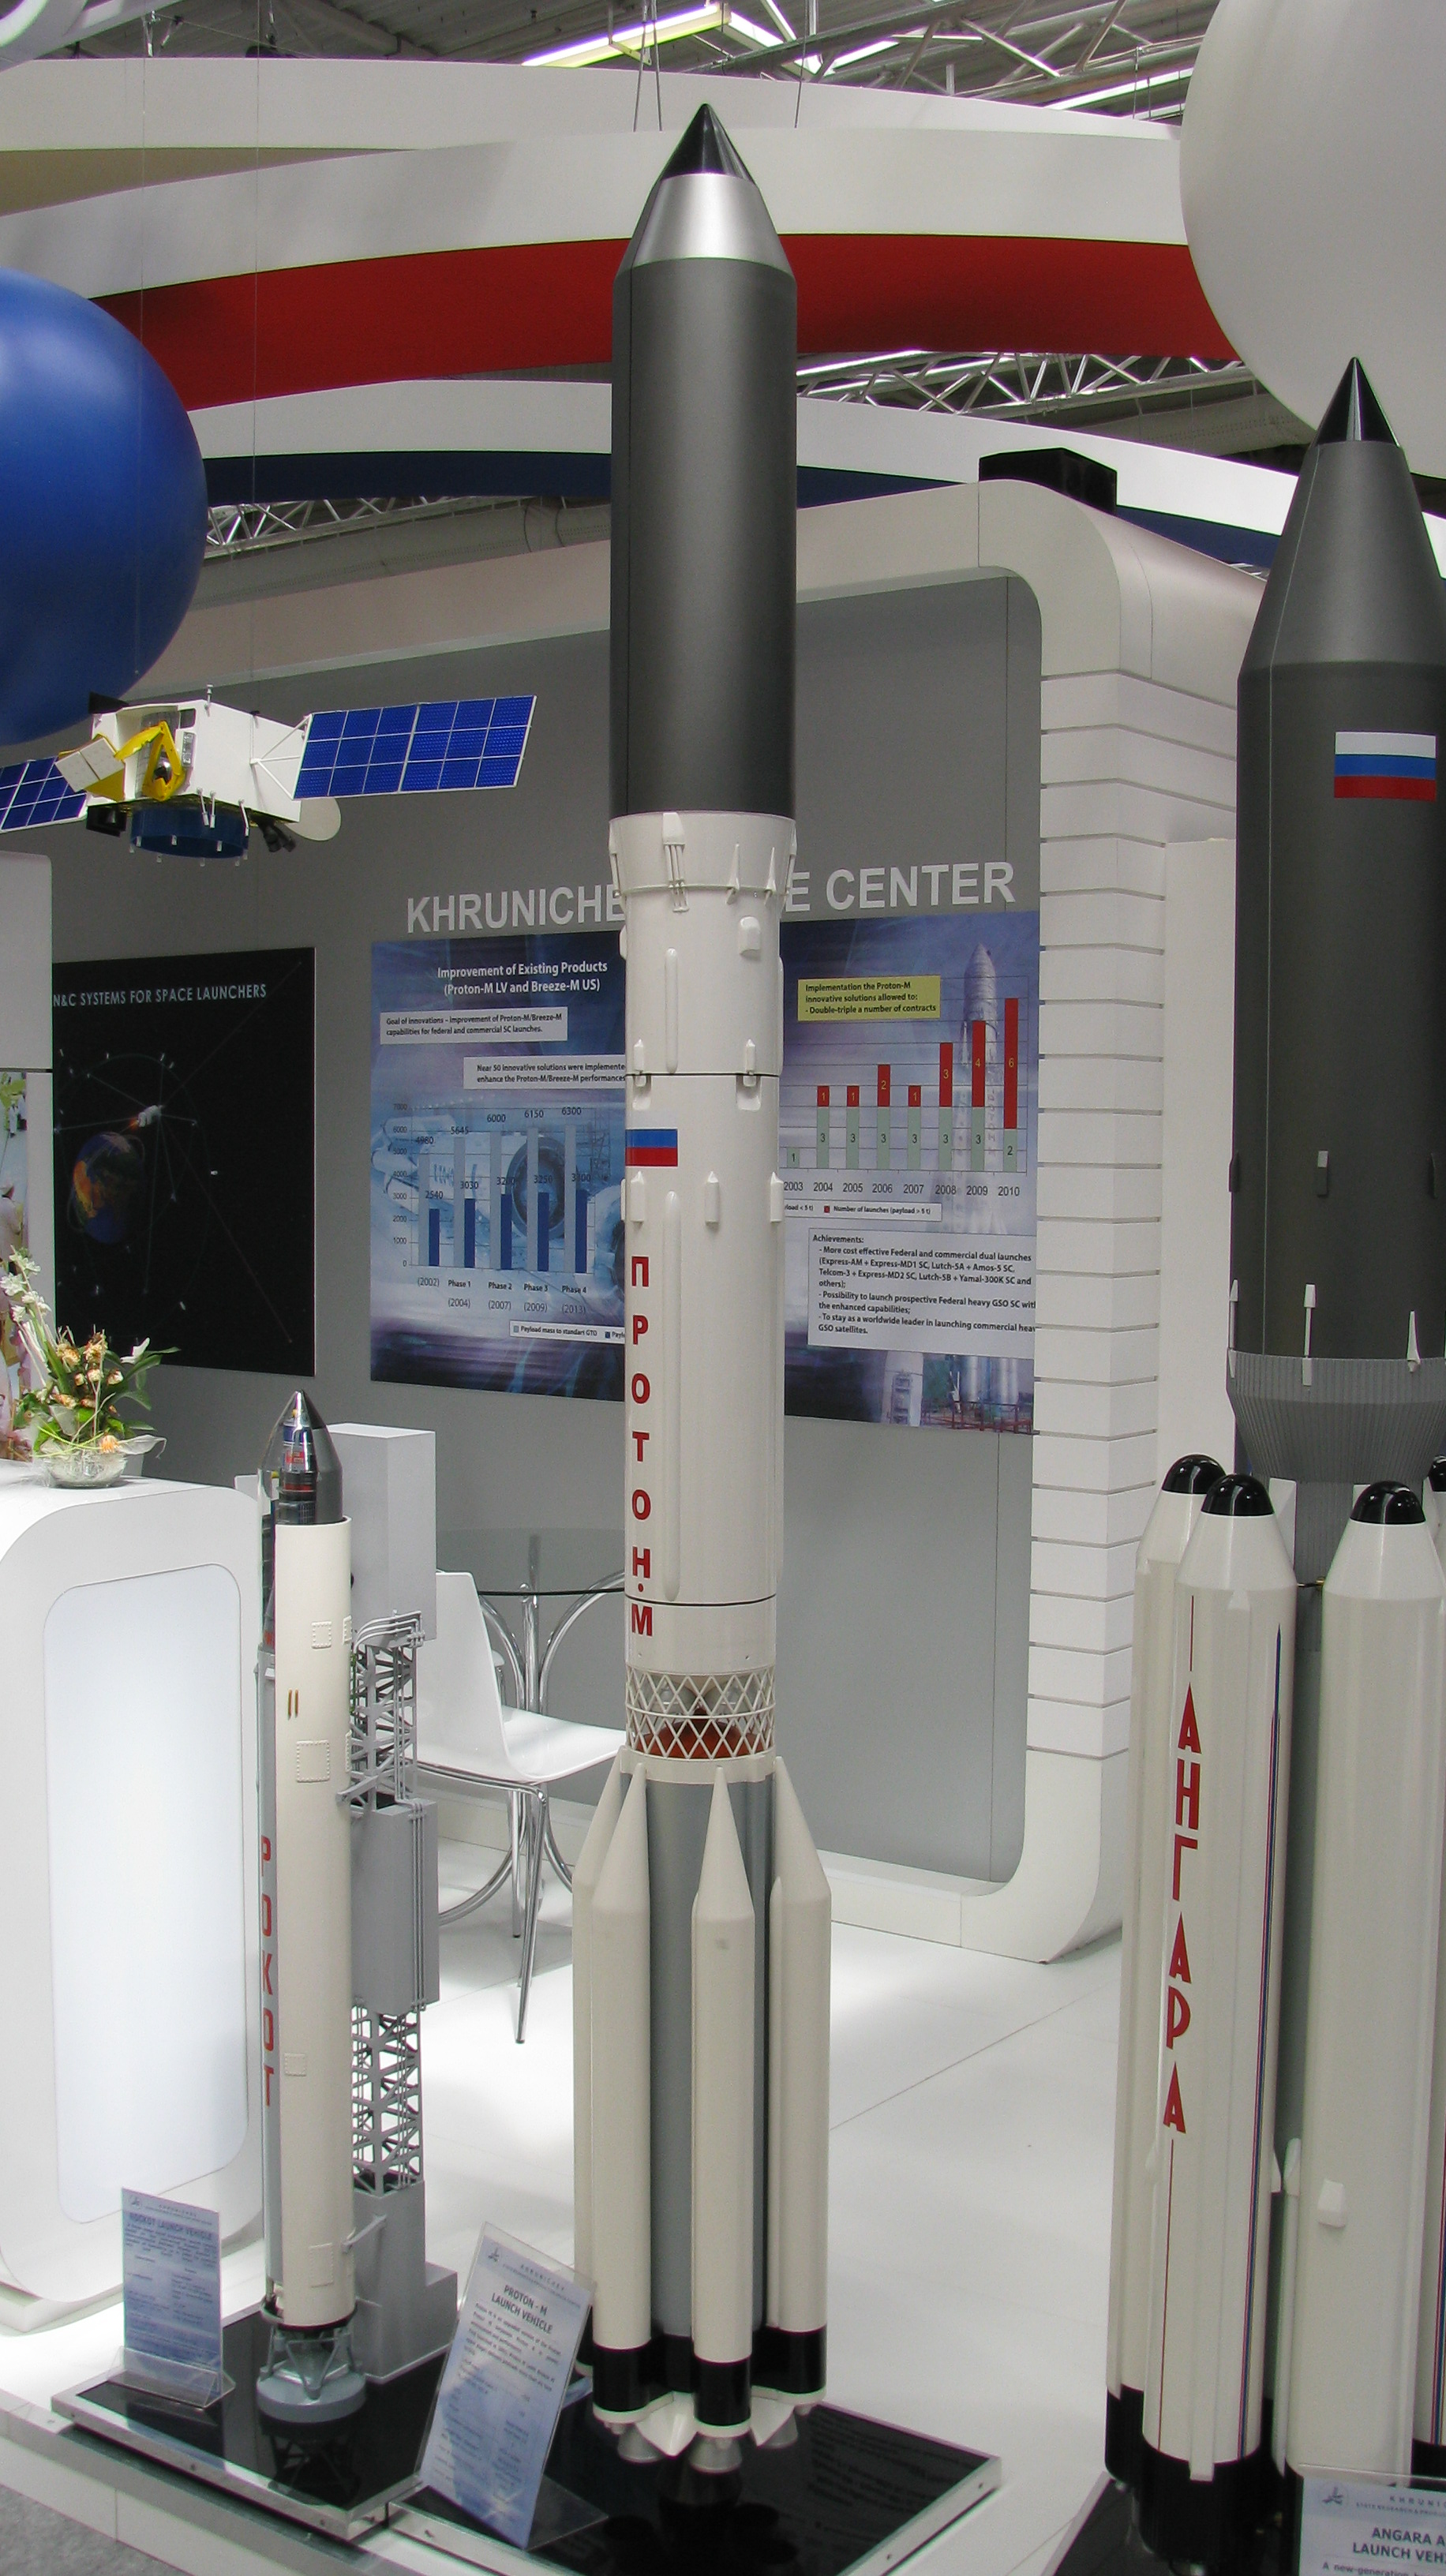 Model of Proton-M launcher with 5m fairing